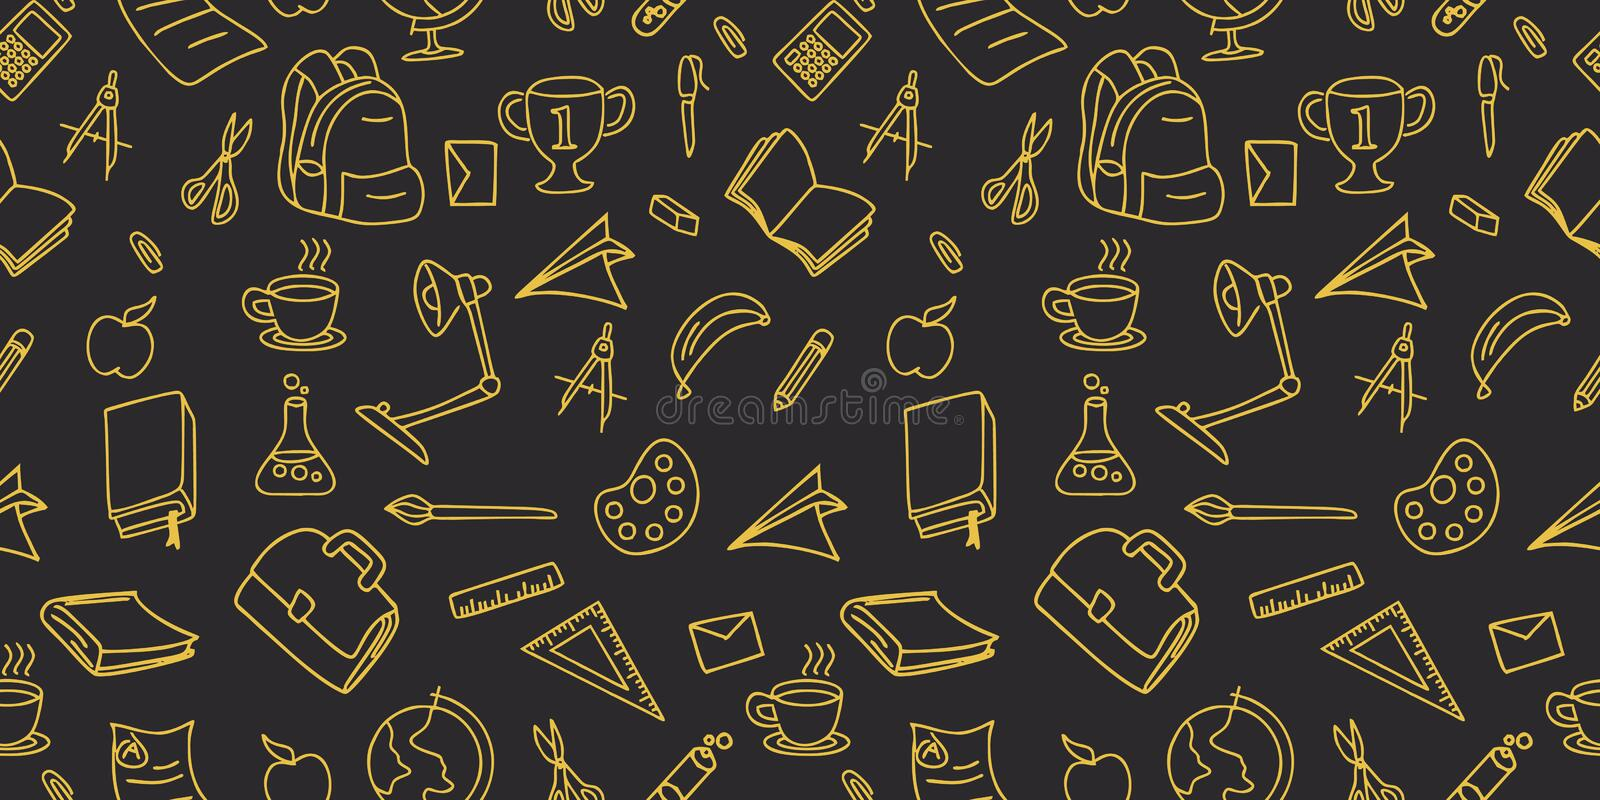 Back to school doodle seamless pattern drawing background lineart design vector illustration royalty free illustration